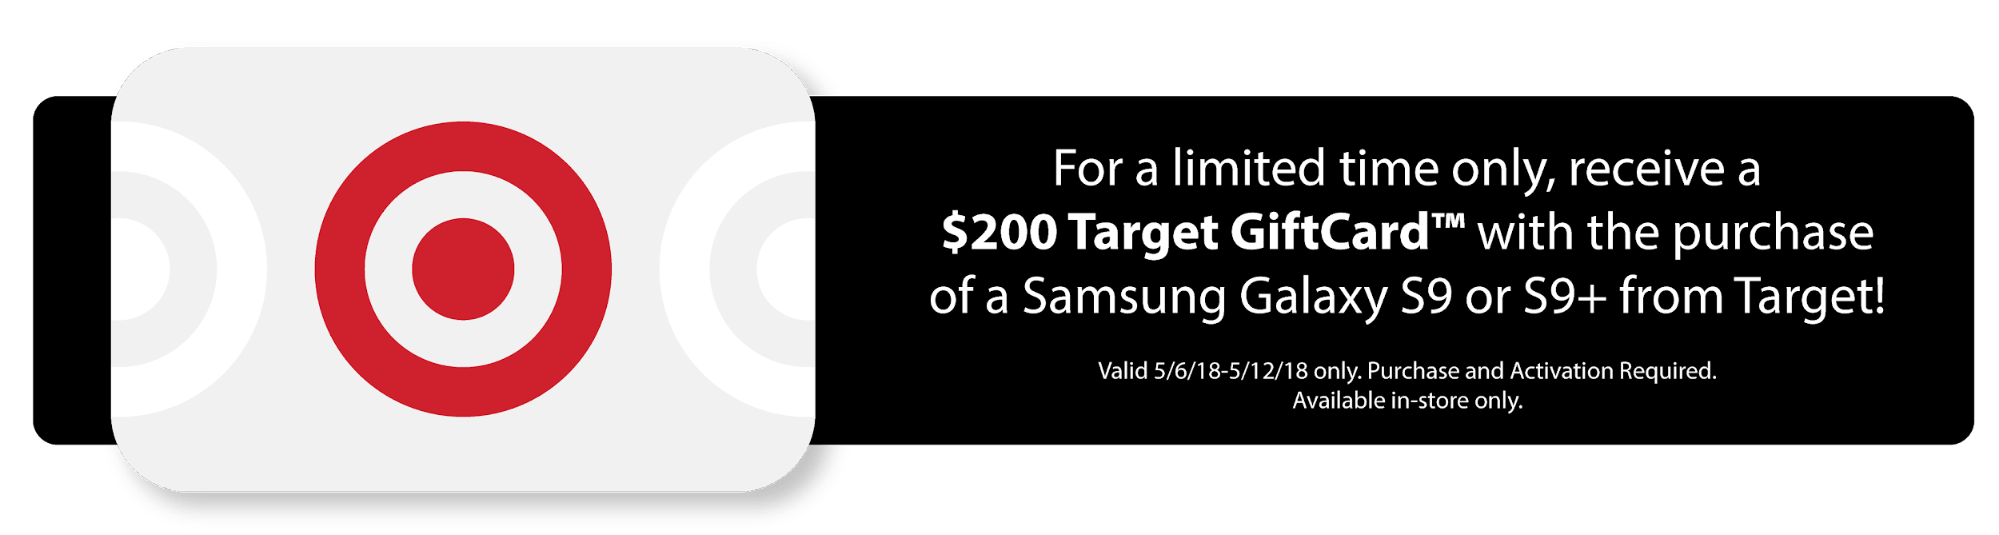 Meet the NEW Samsung Galaxy S9 & S9+ Plus Get a $200 Gift Card #SamsungTargetTech #ad